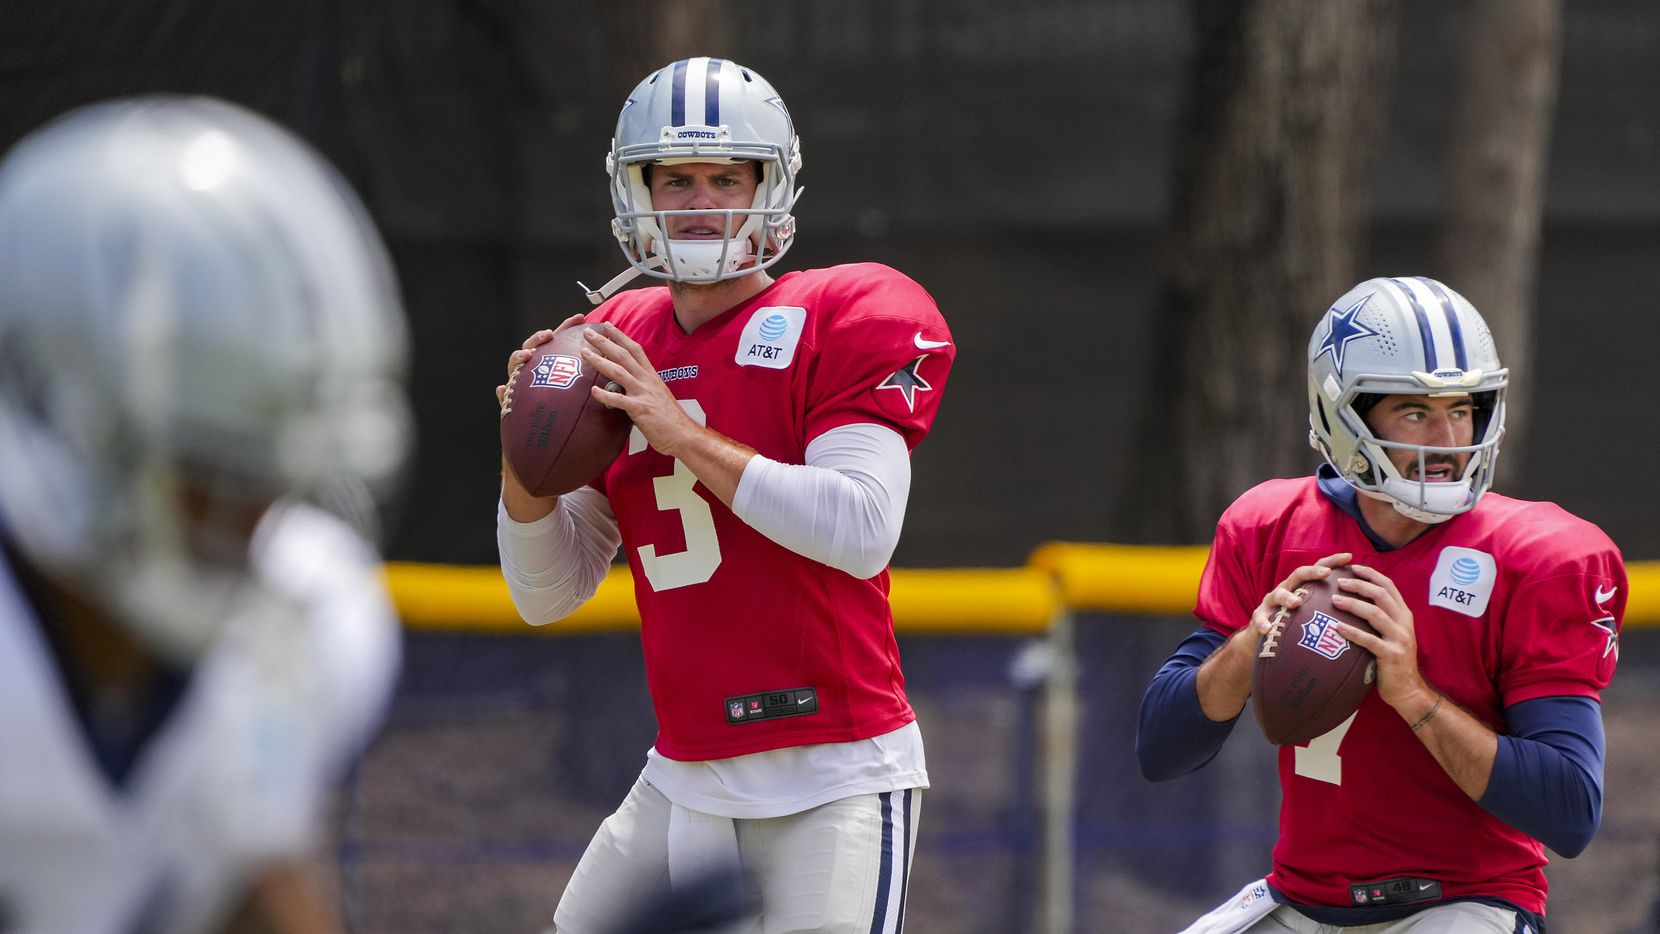 Dallas Cowboys quarterbacks Garrett Gilbert (3) and Ben DiNucci (7) prepare to throw passes during a practice at training camp on Saturday, July 31, 2021, in Oxnard, Calif.